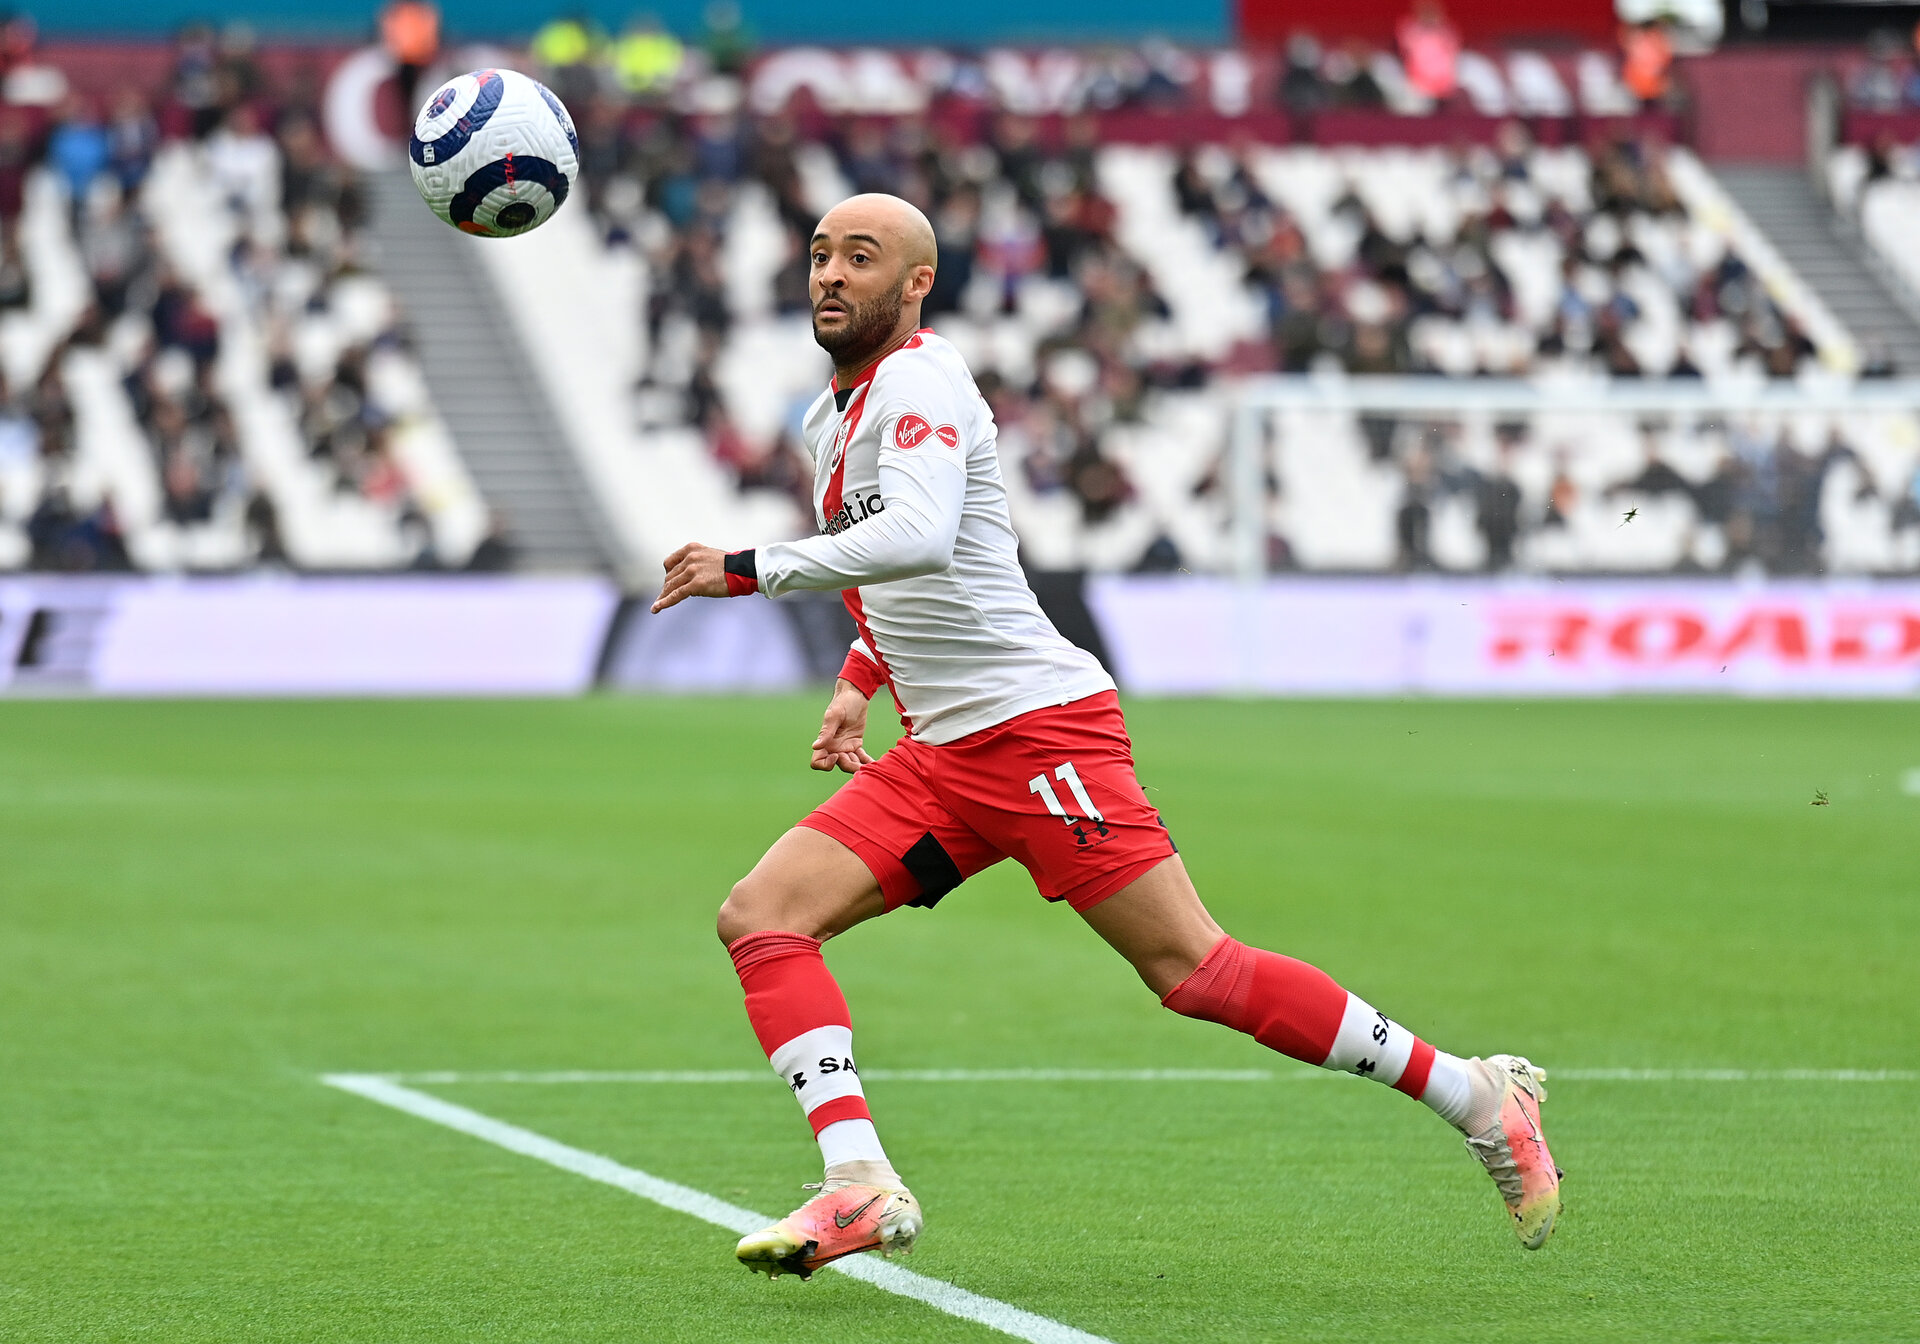 LONDON, ENGLAND - MAY 23: Nathan Redmond of Southampton runs with the ball  during the Premier League match between West Ham United and Southampton at London Stadium on May 23, 2021 in London, England. A limited number of fans will be allowed into Premier League stadiums as Coronavirus restrictions begin to ease in the UK. (Photo by Justin Tallis - Pool/Getty Images)